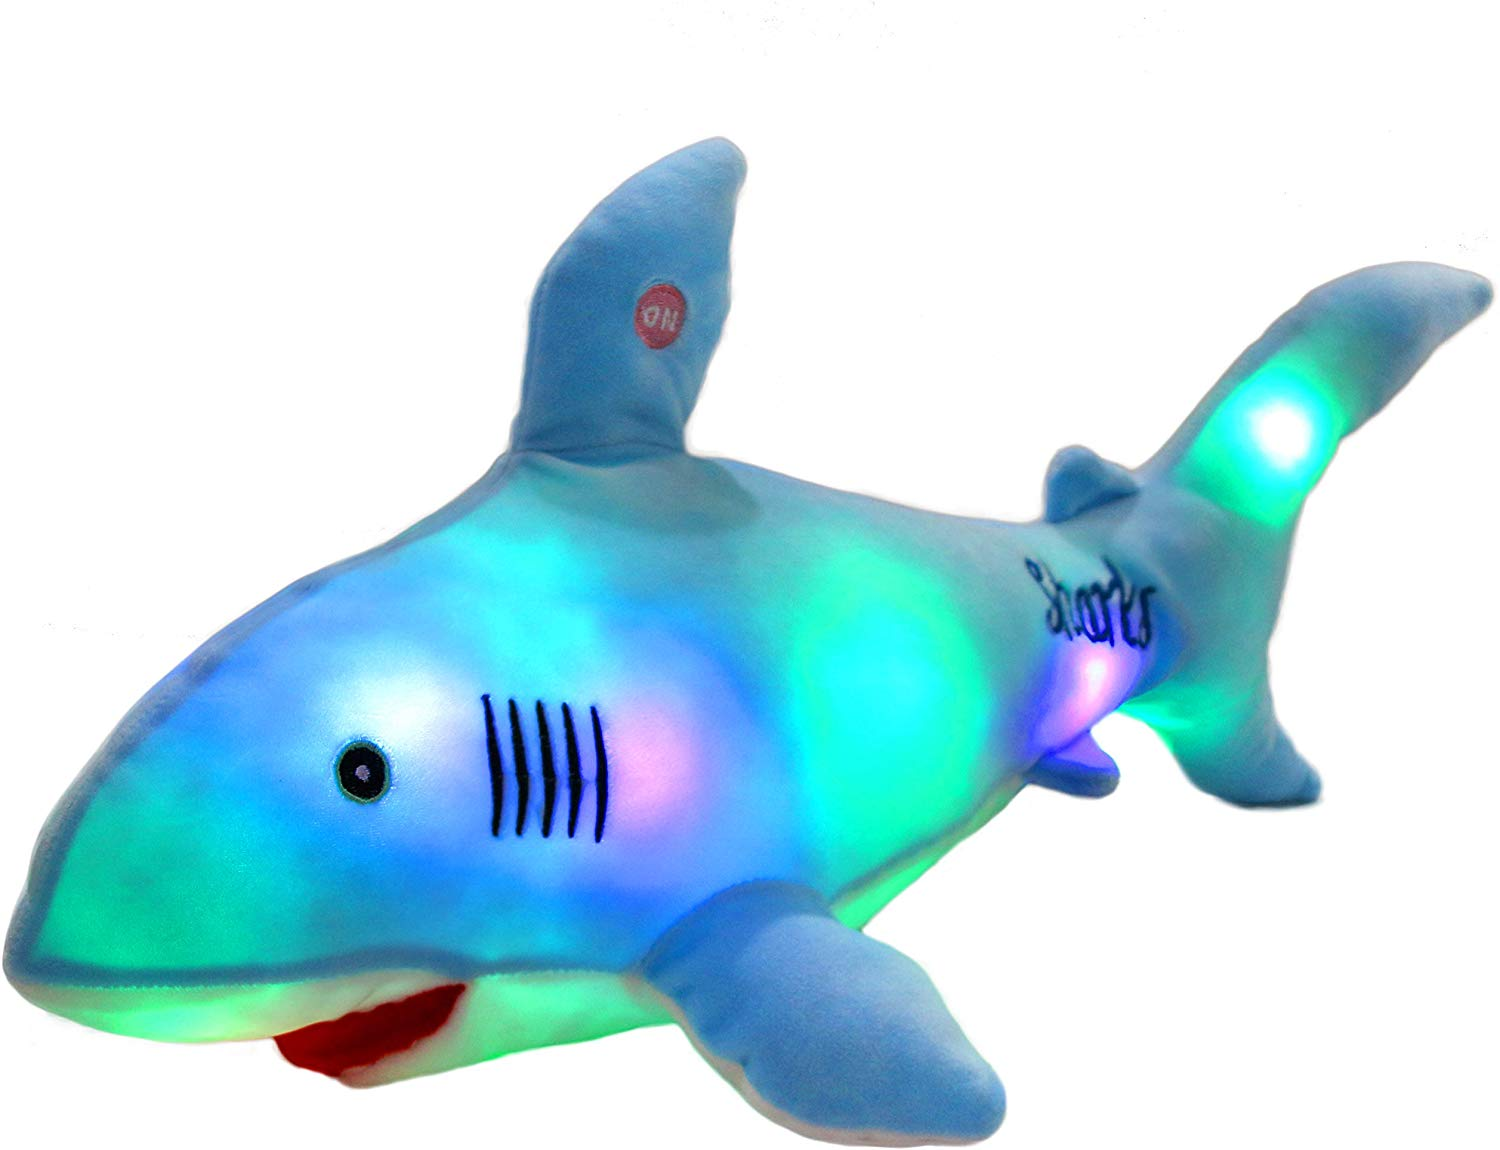 715RqdNXJYL. AC SL1500 - Bstaofy LED Blue Shark Stuffed Animal Glow Plush